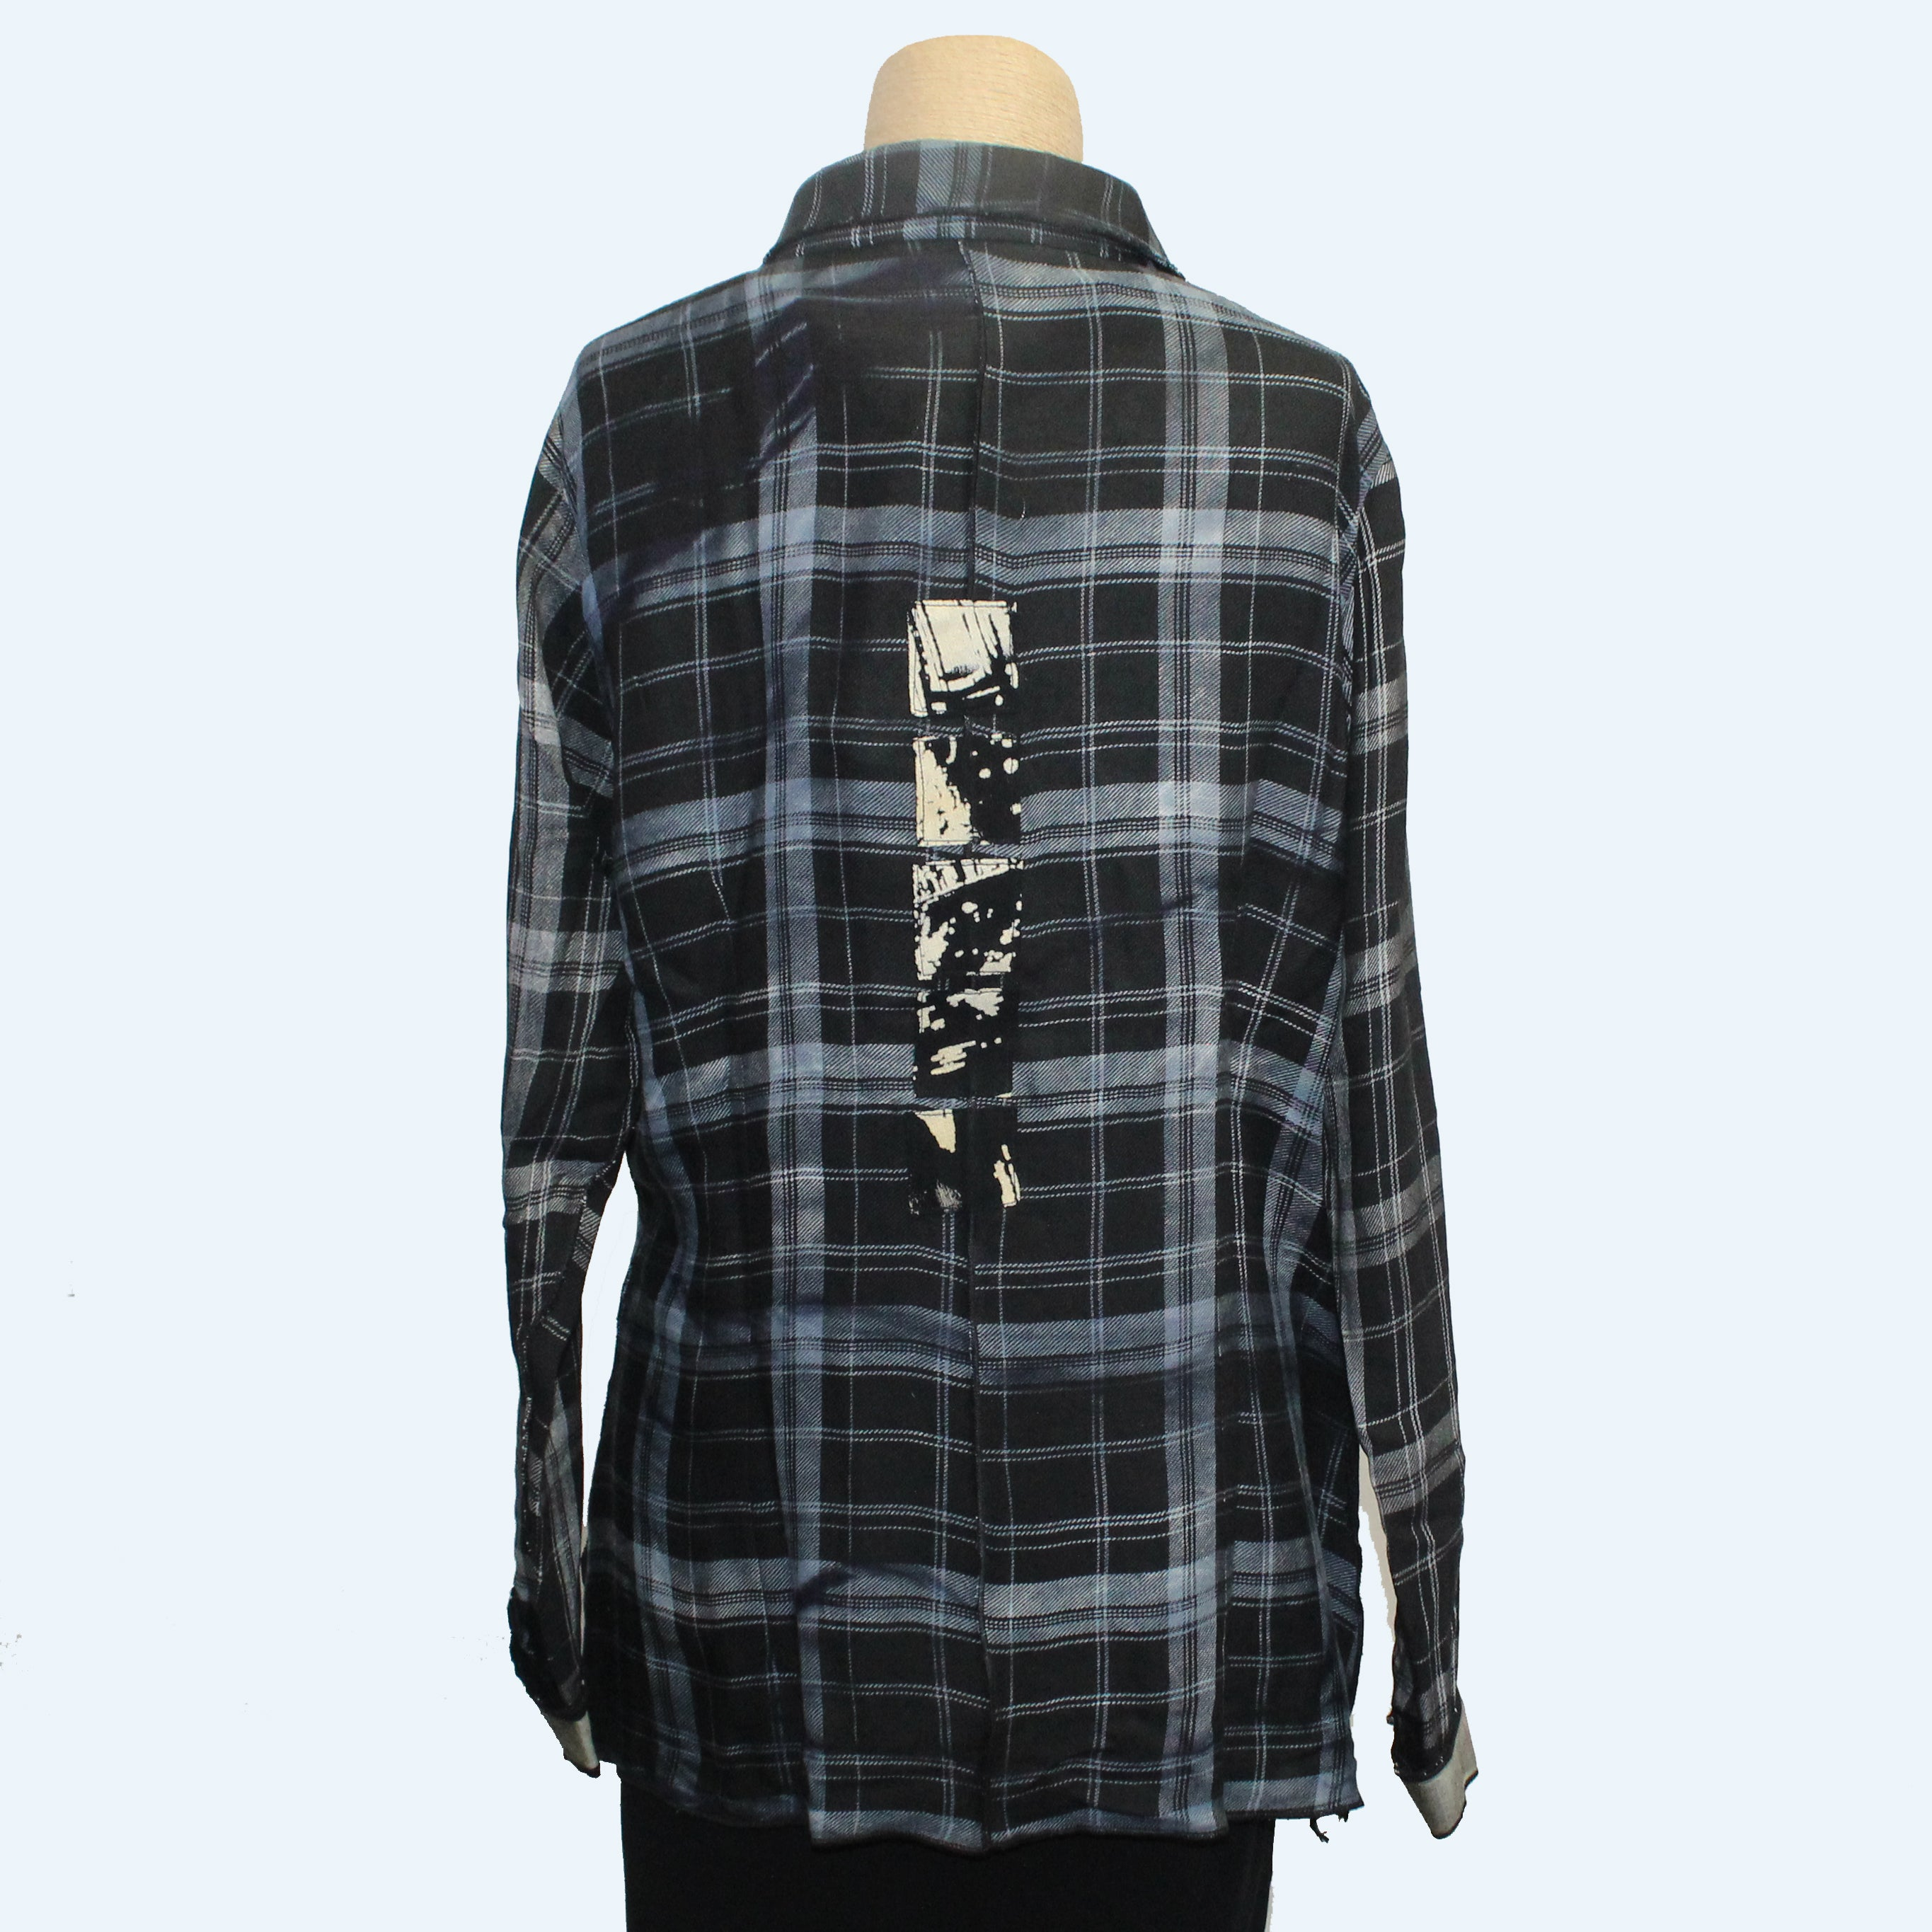 Deborah Cross Shirt, Plaid, S